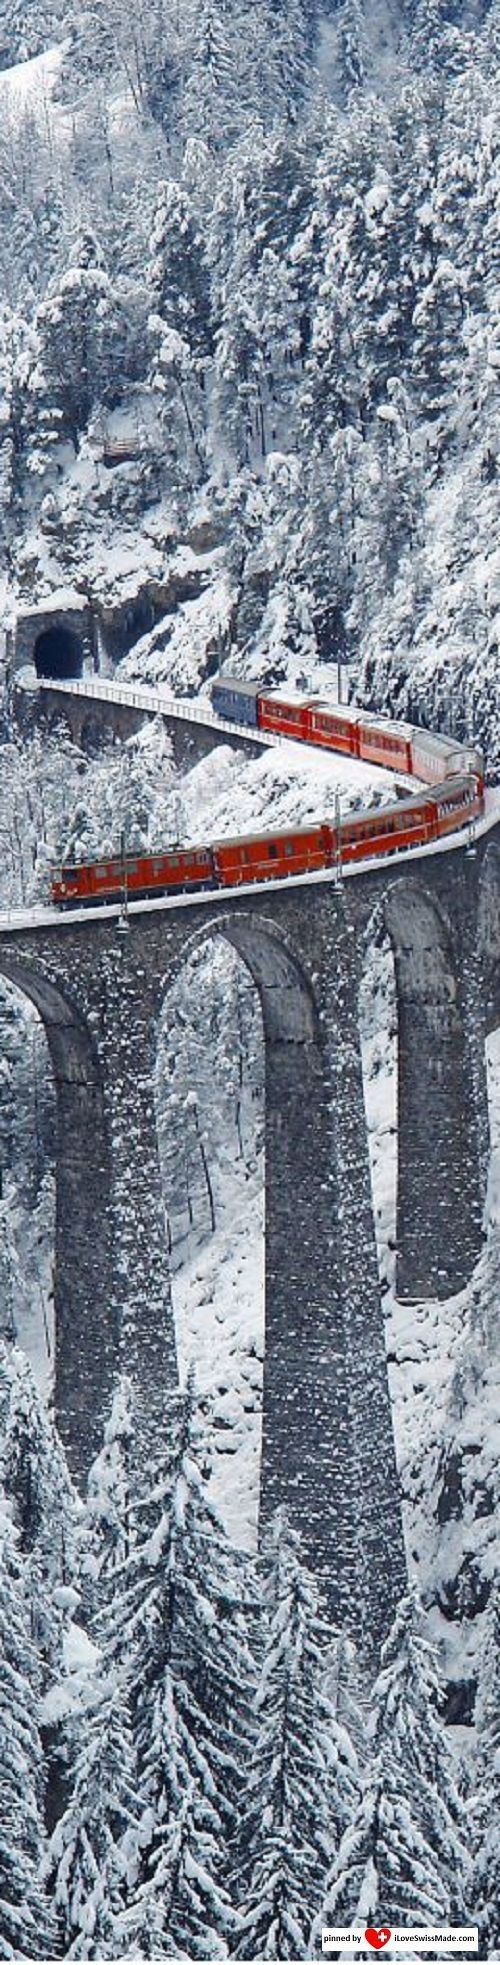 ✔️ Landwasser Viaduct Switzerland to Italy. The Bernina Express is a brightly colored scarlet train that crosses the Alps beginning in the town of Chur and ends in Tirano, just across the border in northern Italy. #PANDORATexas